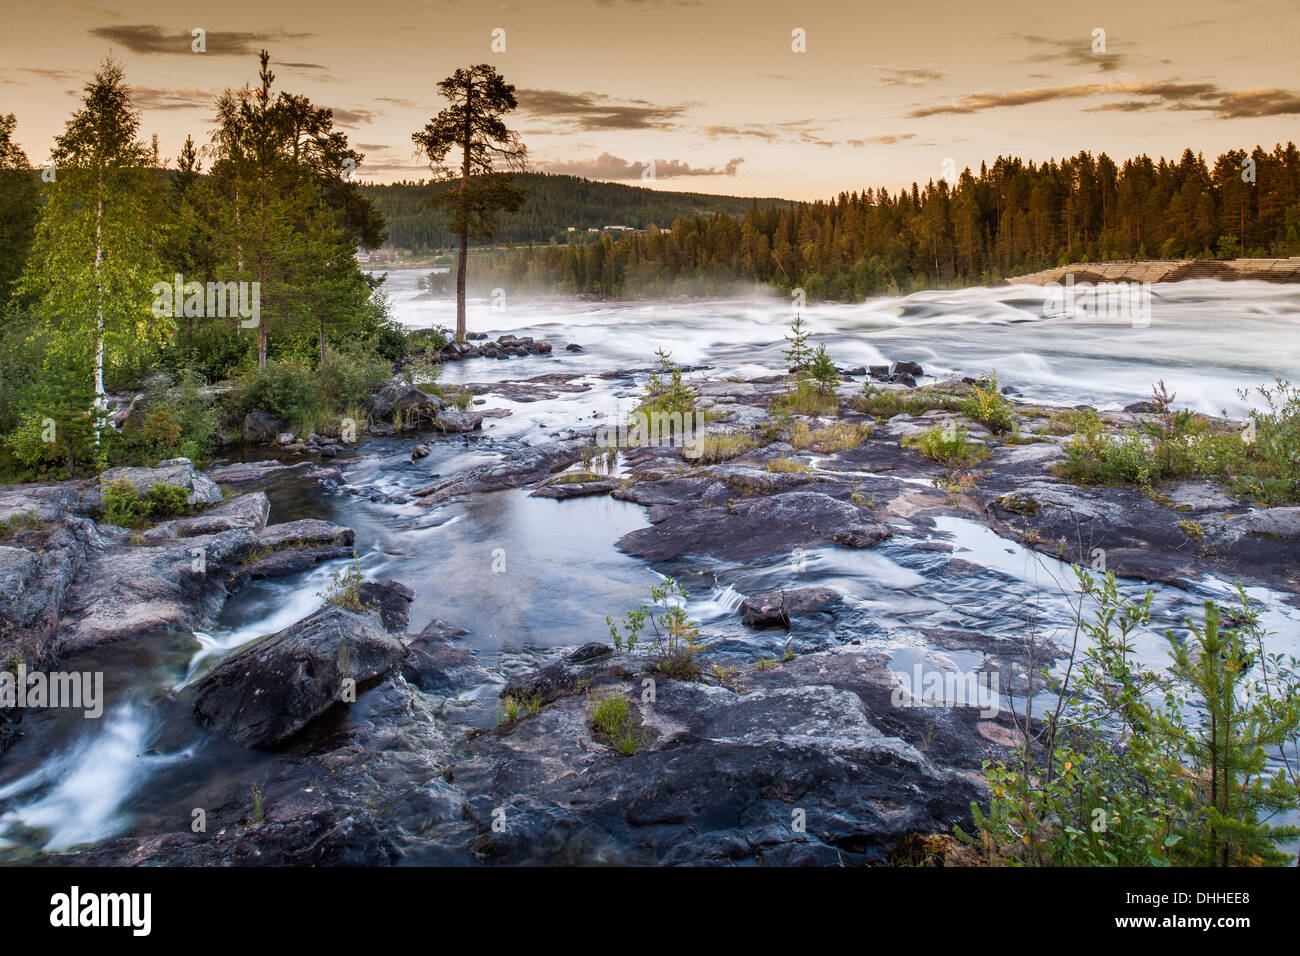 View of river flowing over rocks, Storforsen, Lapland, Sweden - Stock Image